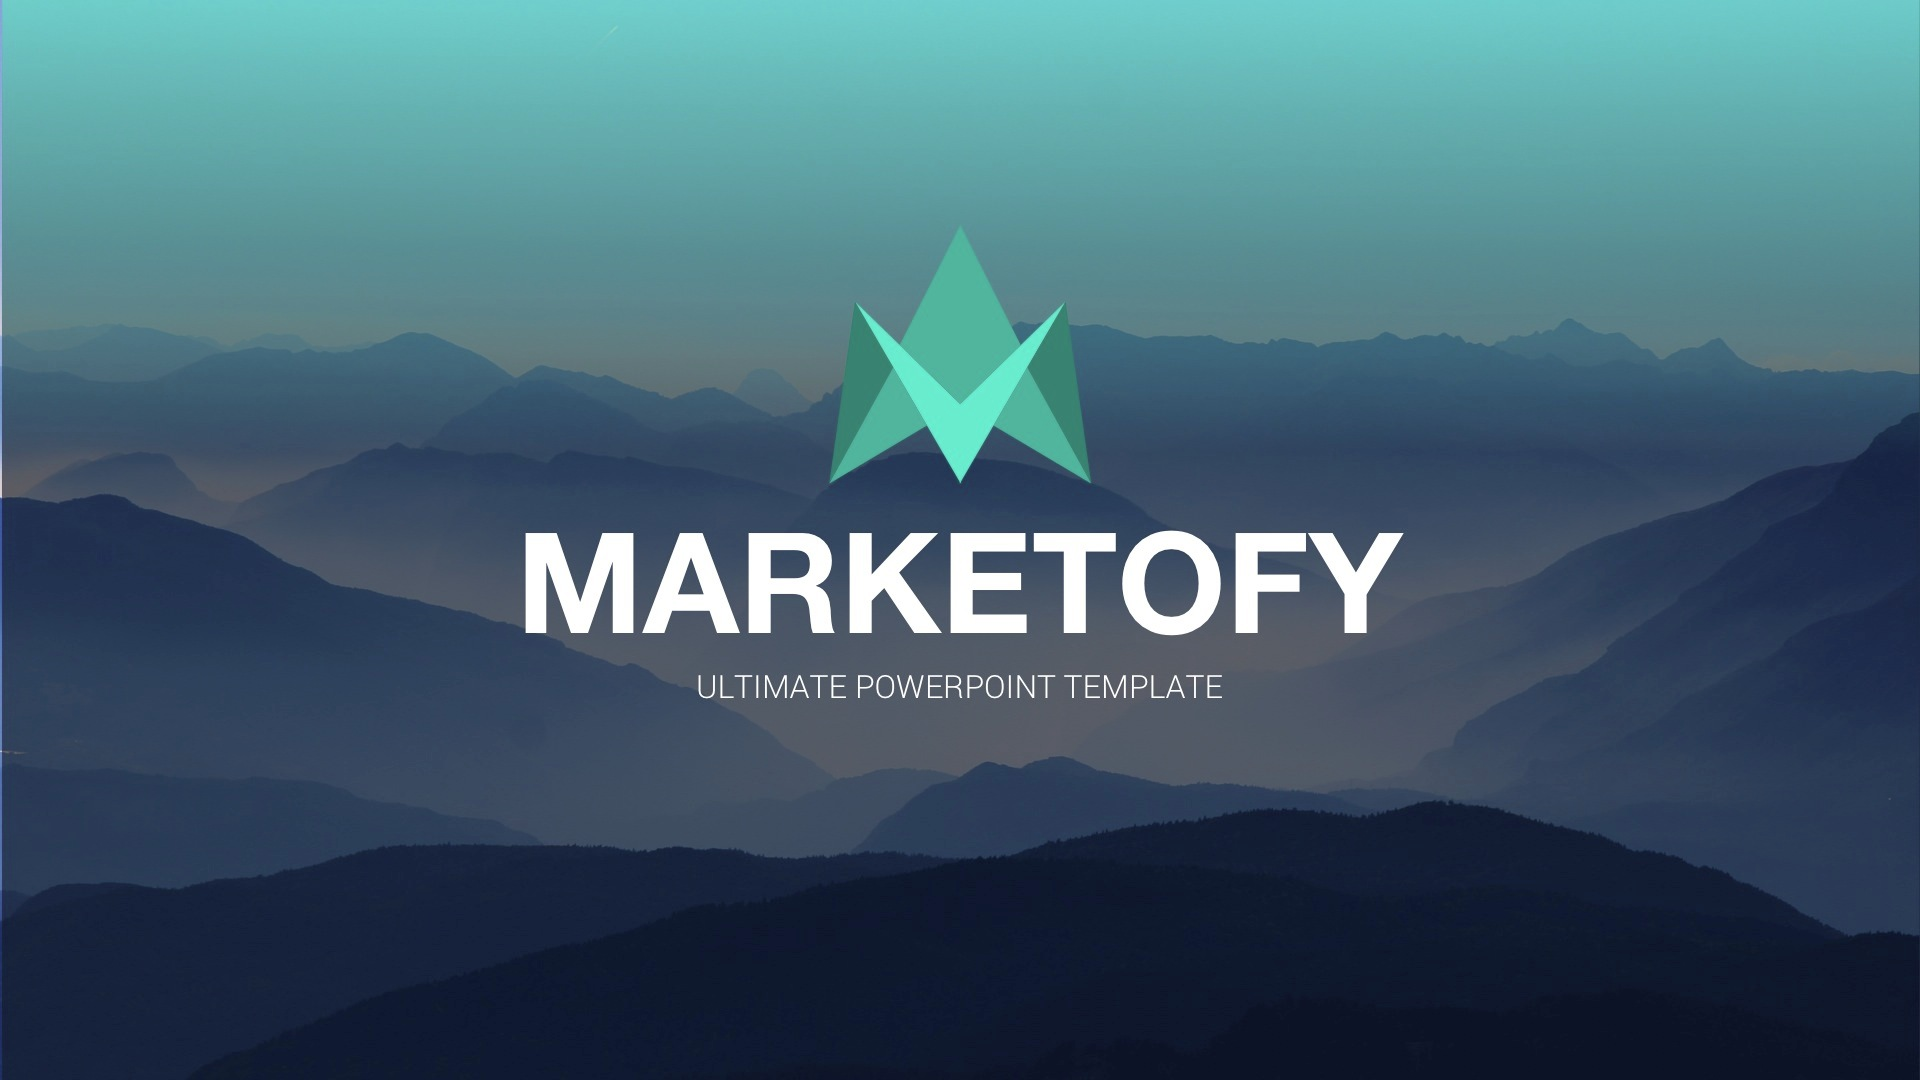 Marketofy   Ultimate PowerPoint Template by slidefusion   GraphicRiver     PowerPoint Templates  Marketofy v2 screenshots Slide001 jpg